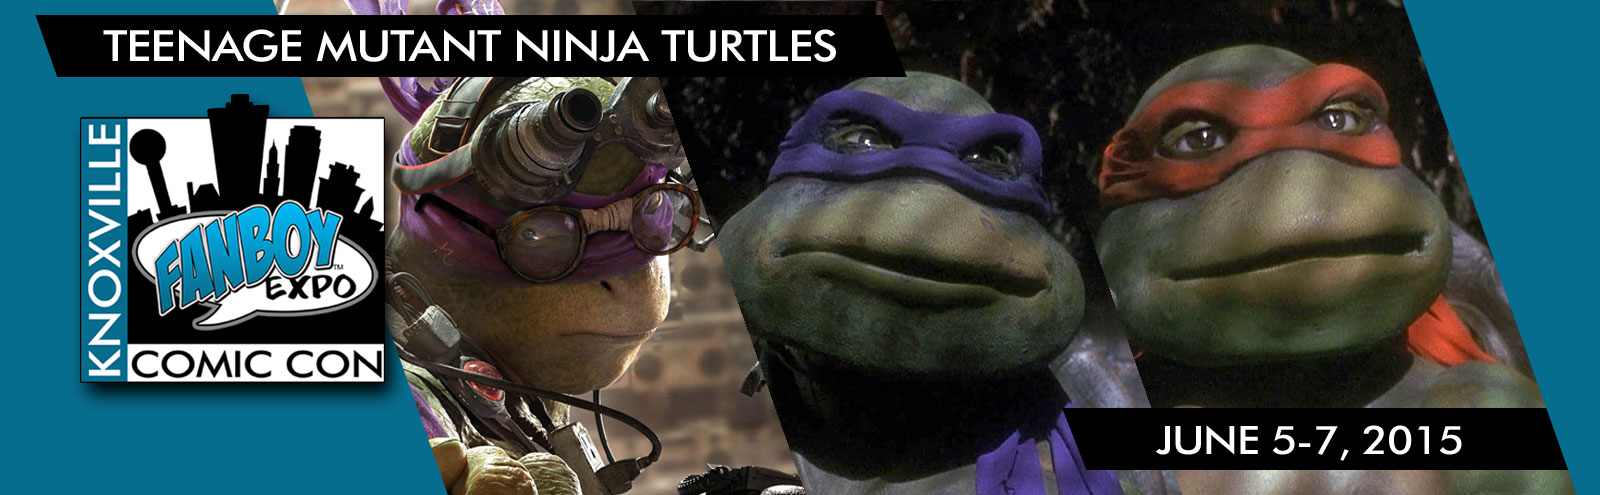 featured-tmnt-21